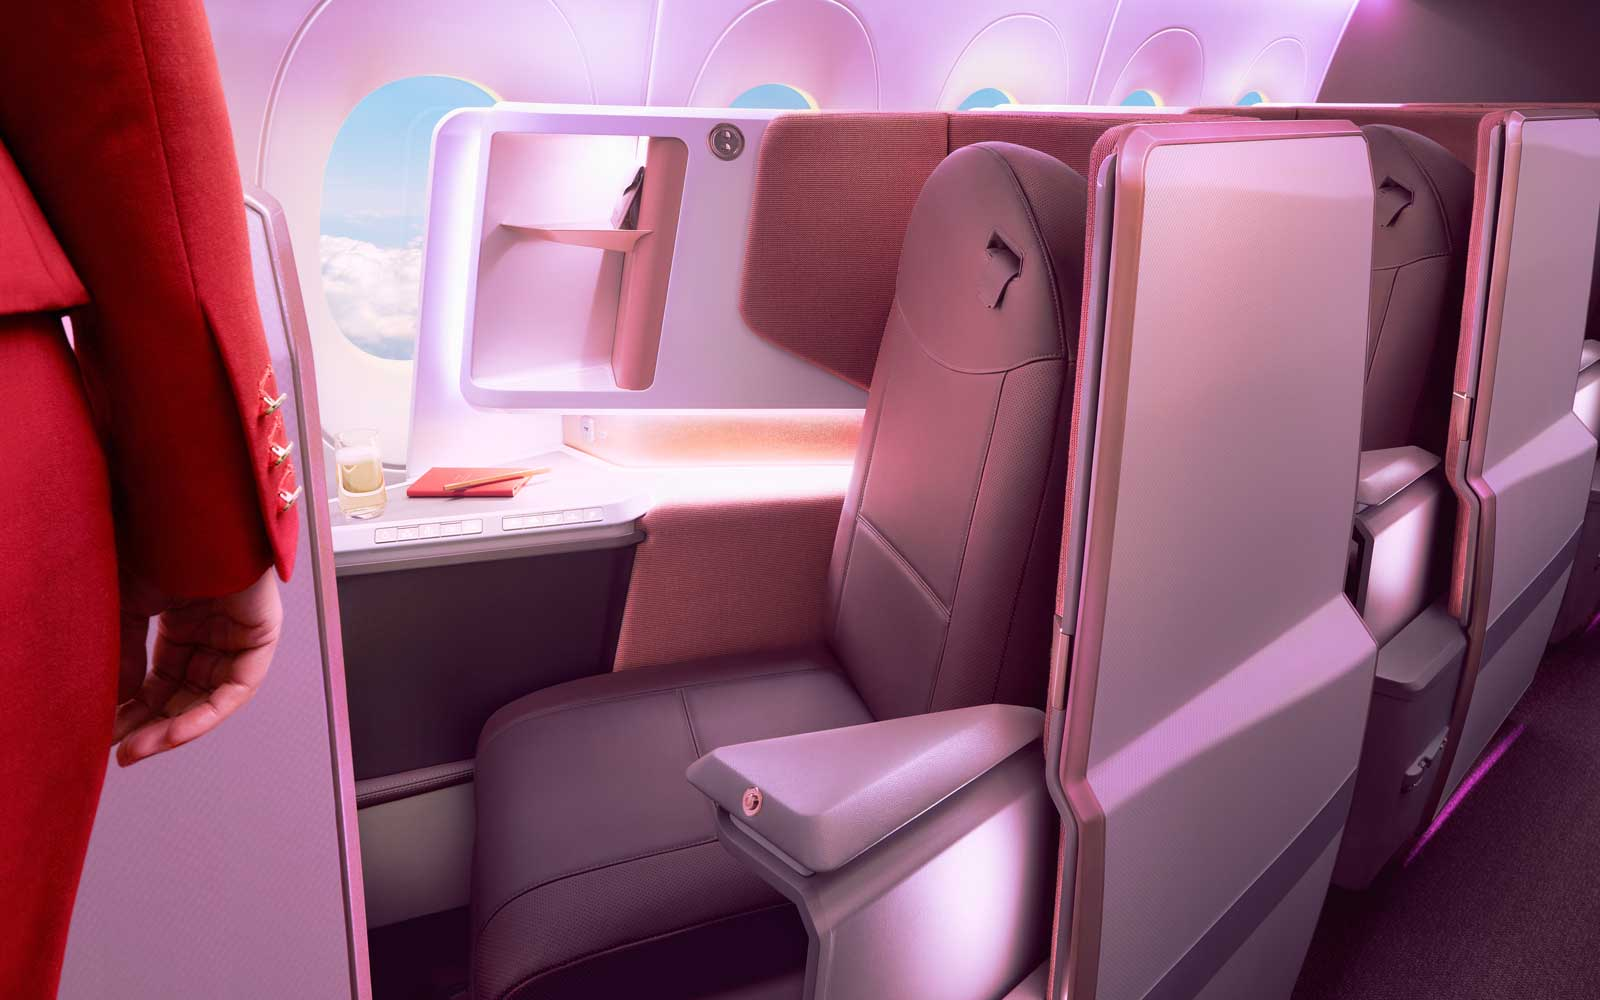 See Photos of Virgin Atlantic's New Airbus A350 — With New Seats and an Onboard Lounge